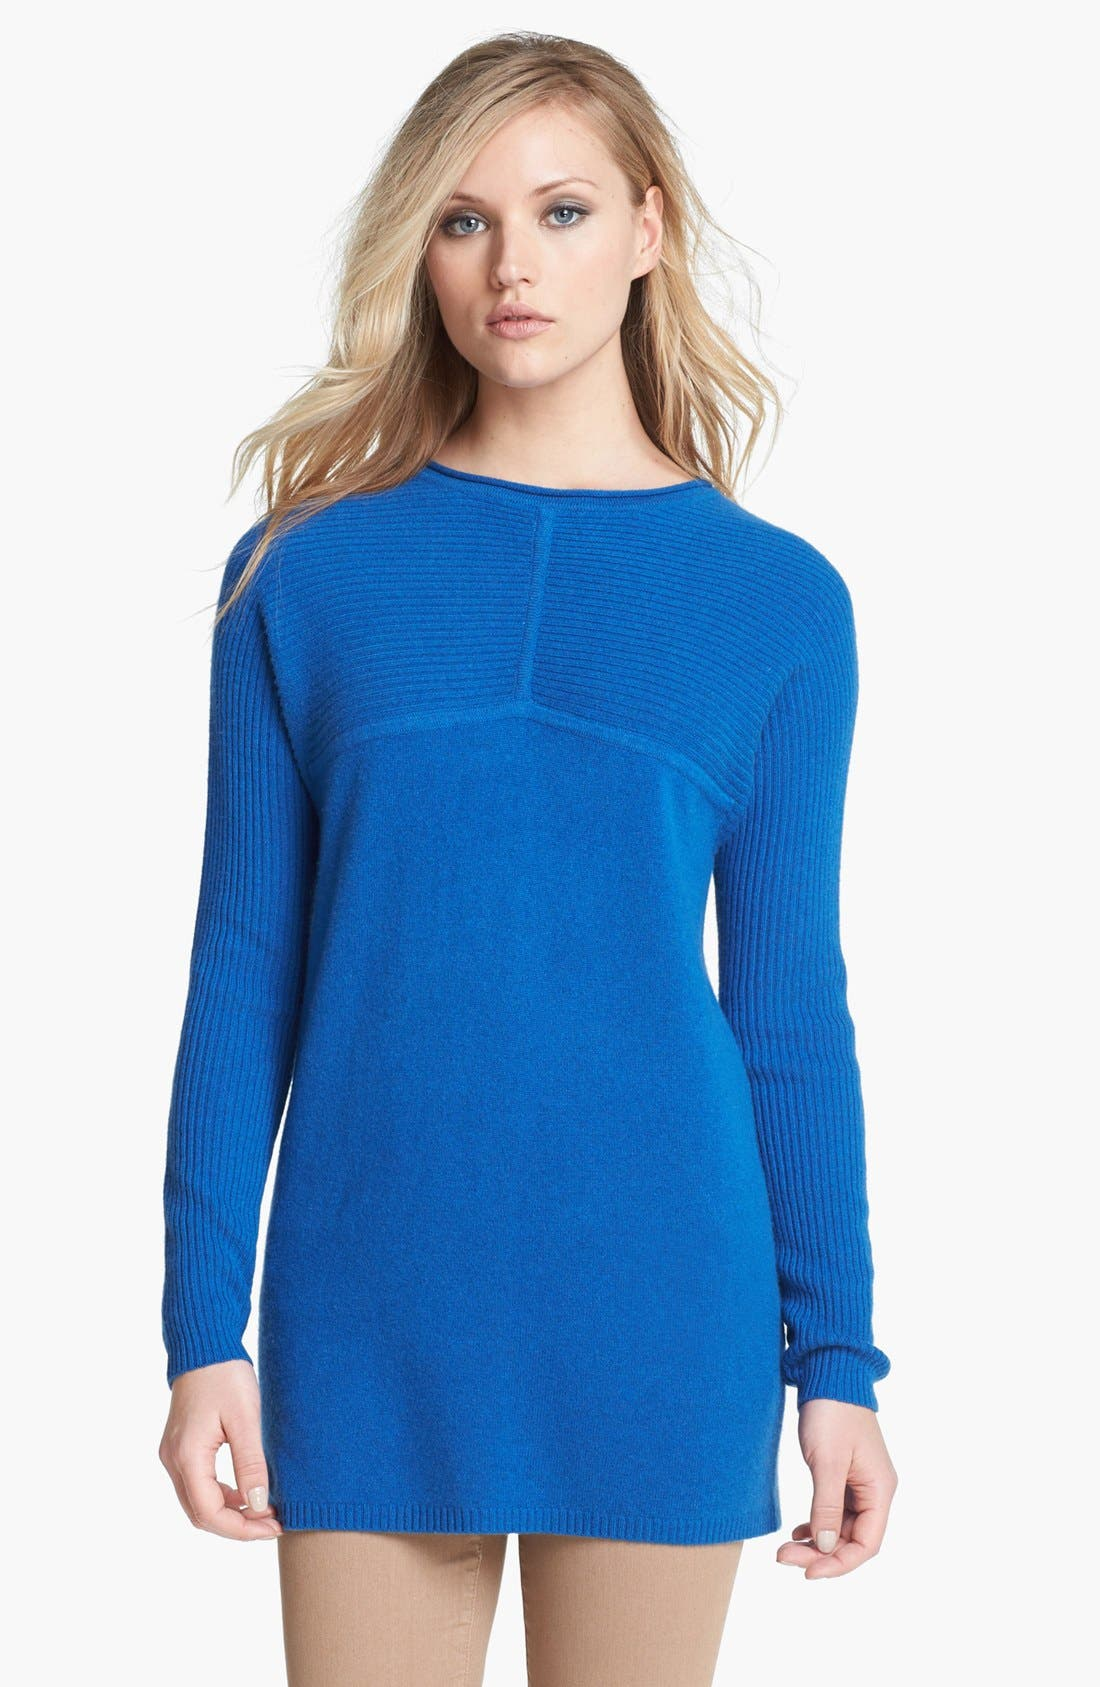 Alternate Image 1 Selected - Tory Burch 'Deanna' Cashmere Sweater